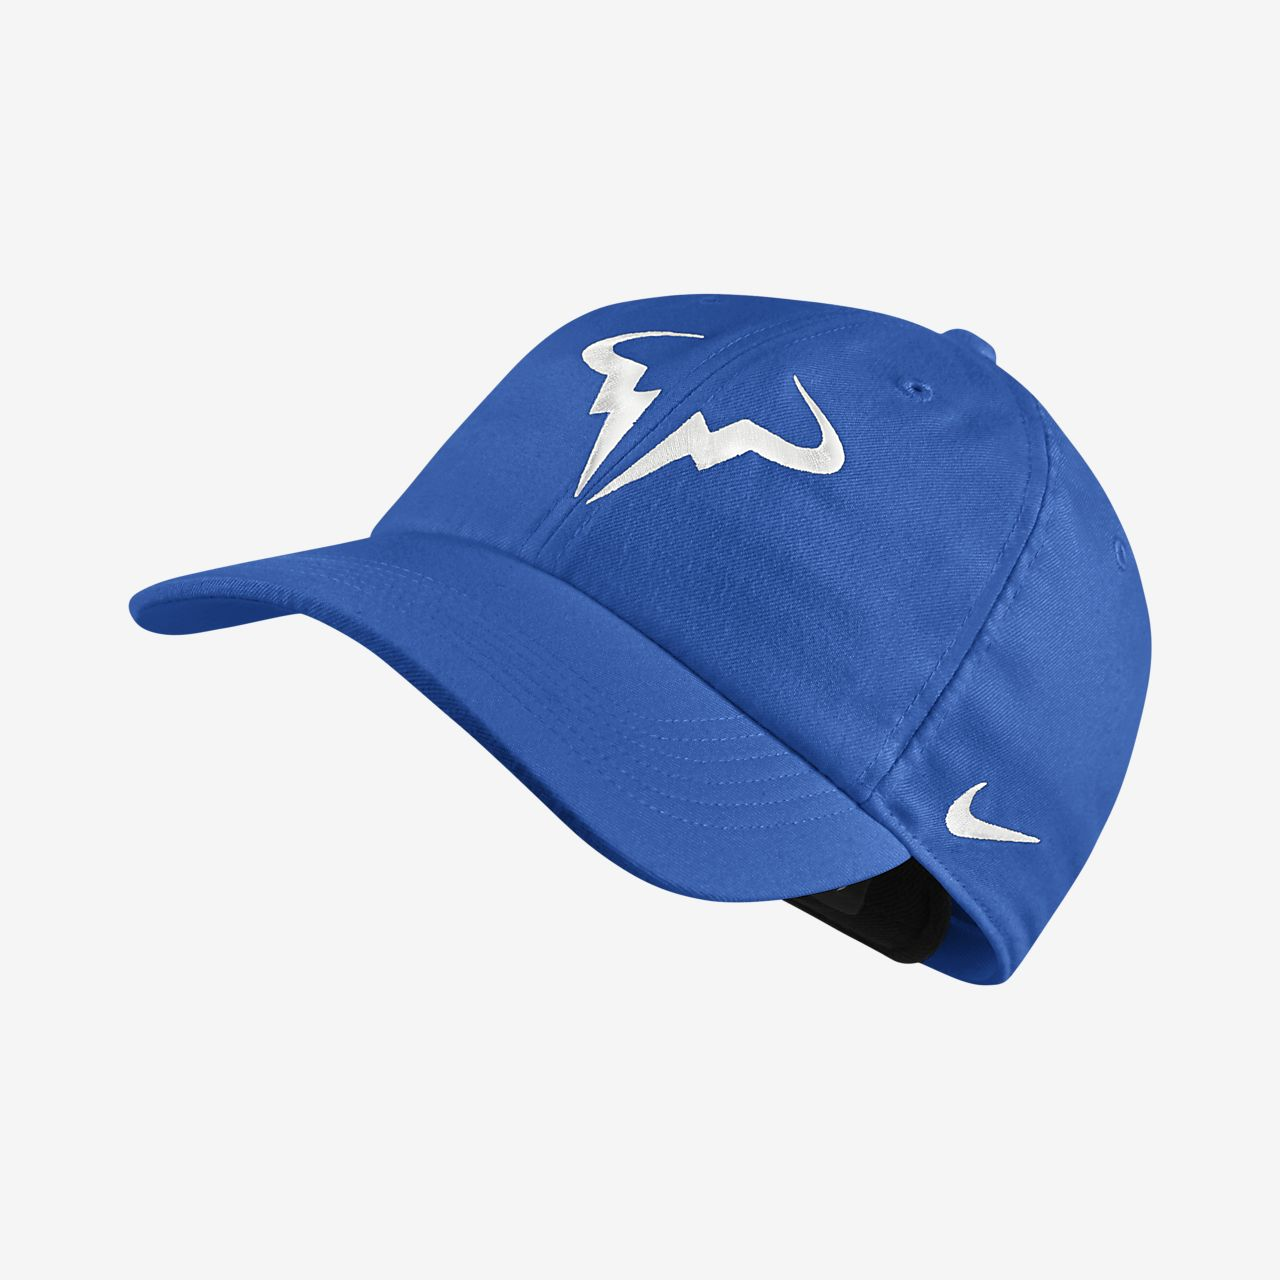 NikeCourt AeroBill Rafa H86 Adjustable Tennis Hat. Nike.com 457cde606a1